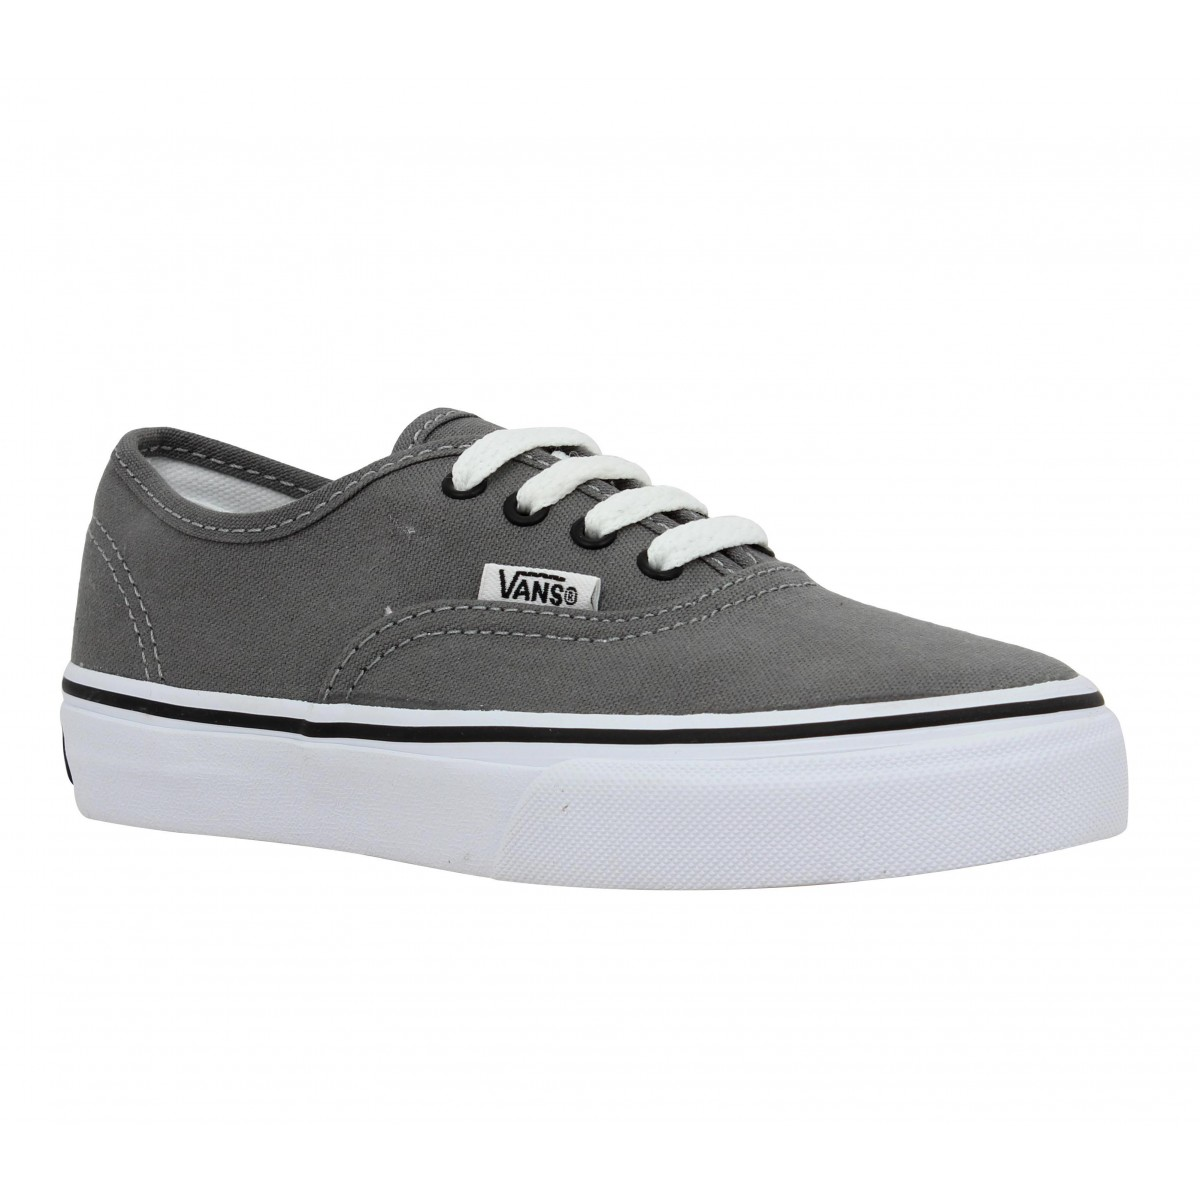 Baskets VANS Authentic toile Enfant Gris